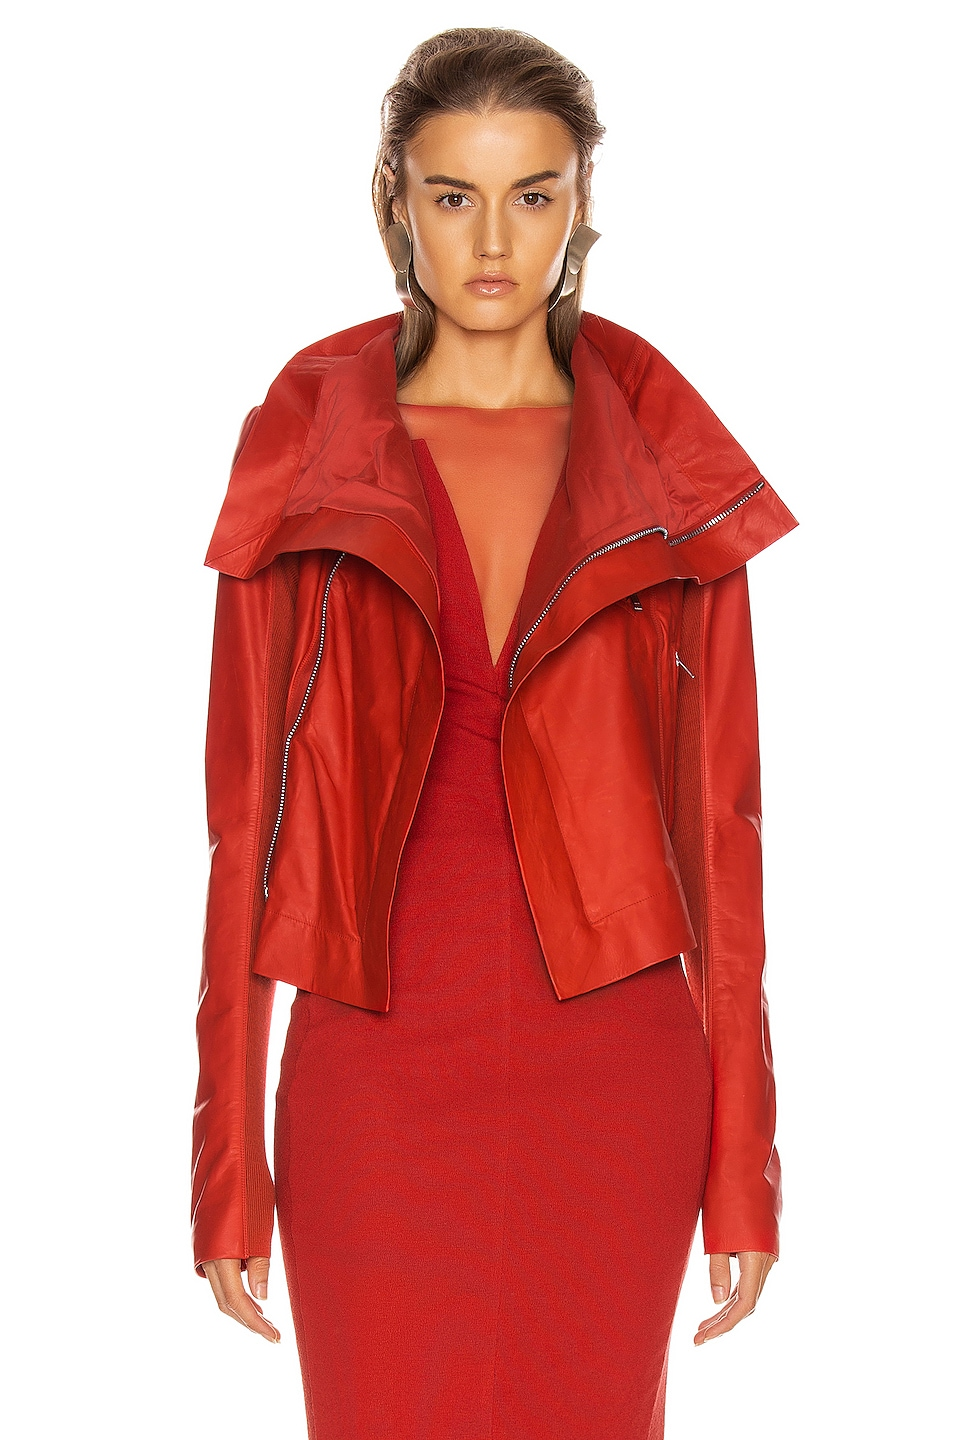 Image 1 of Rick Owens Leather Biker Jacket in Cardinal Red